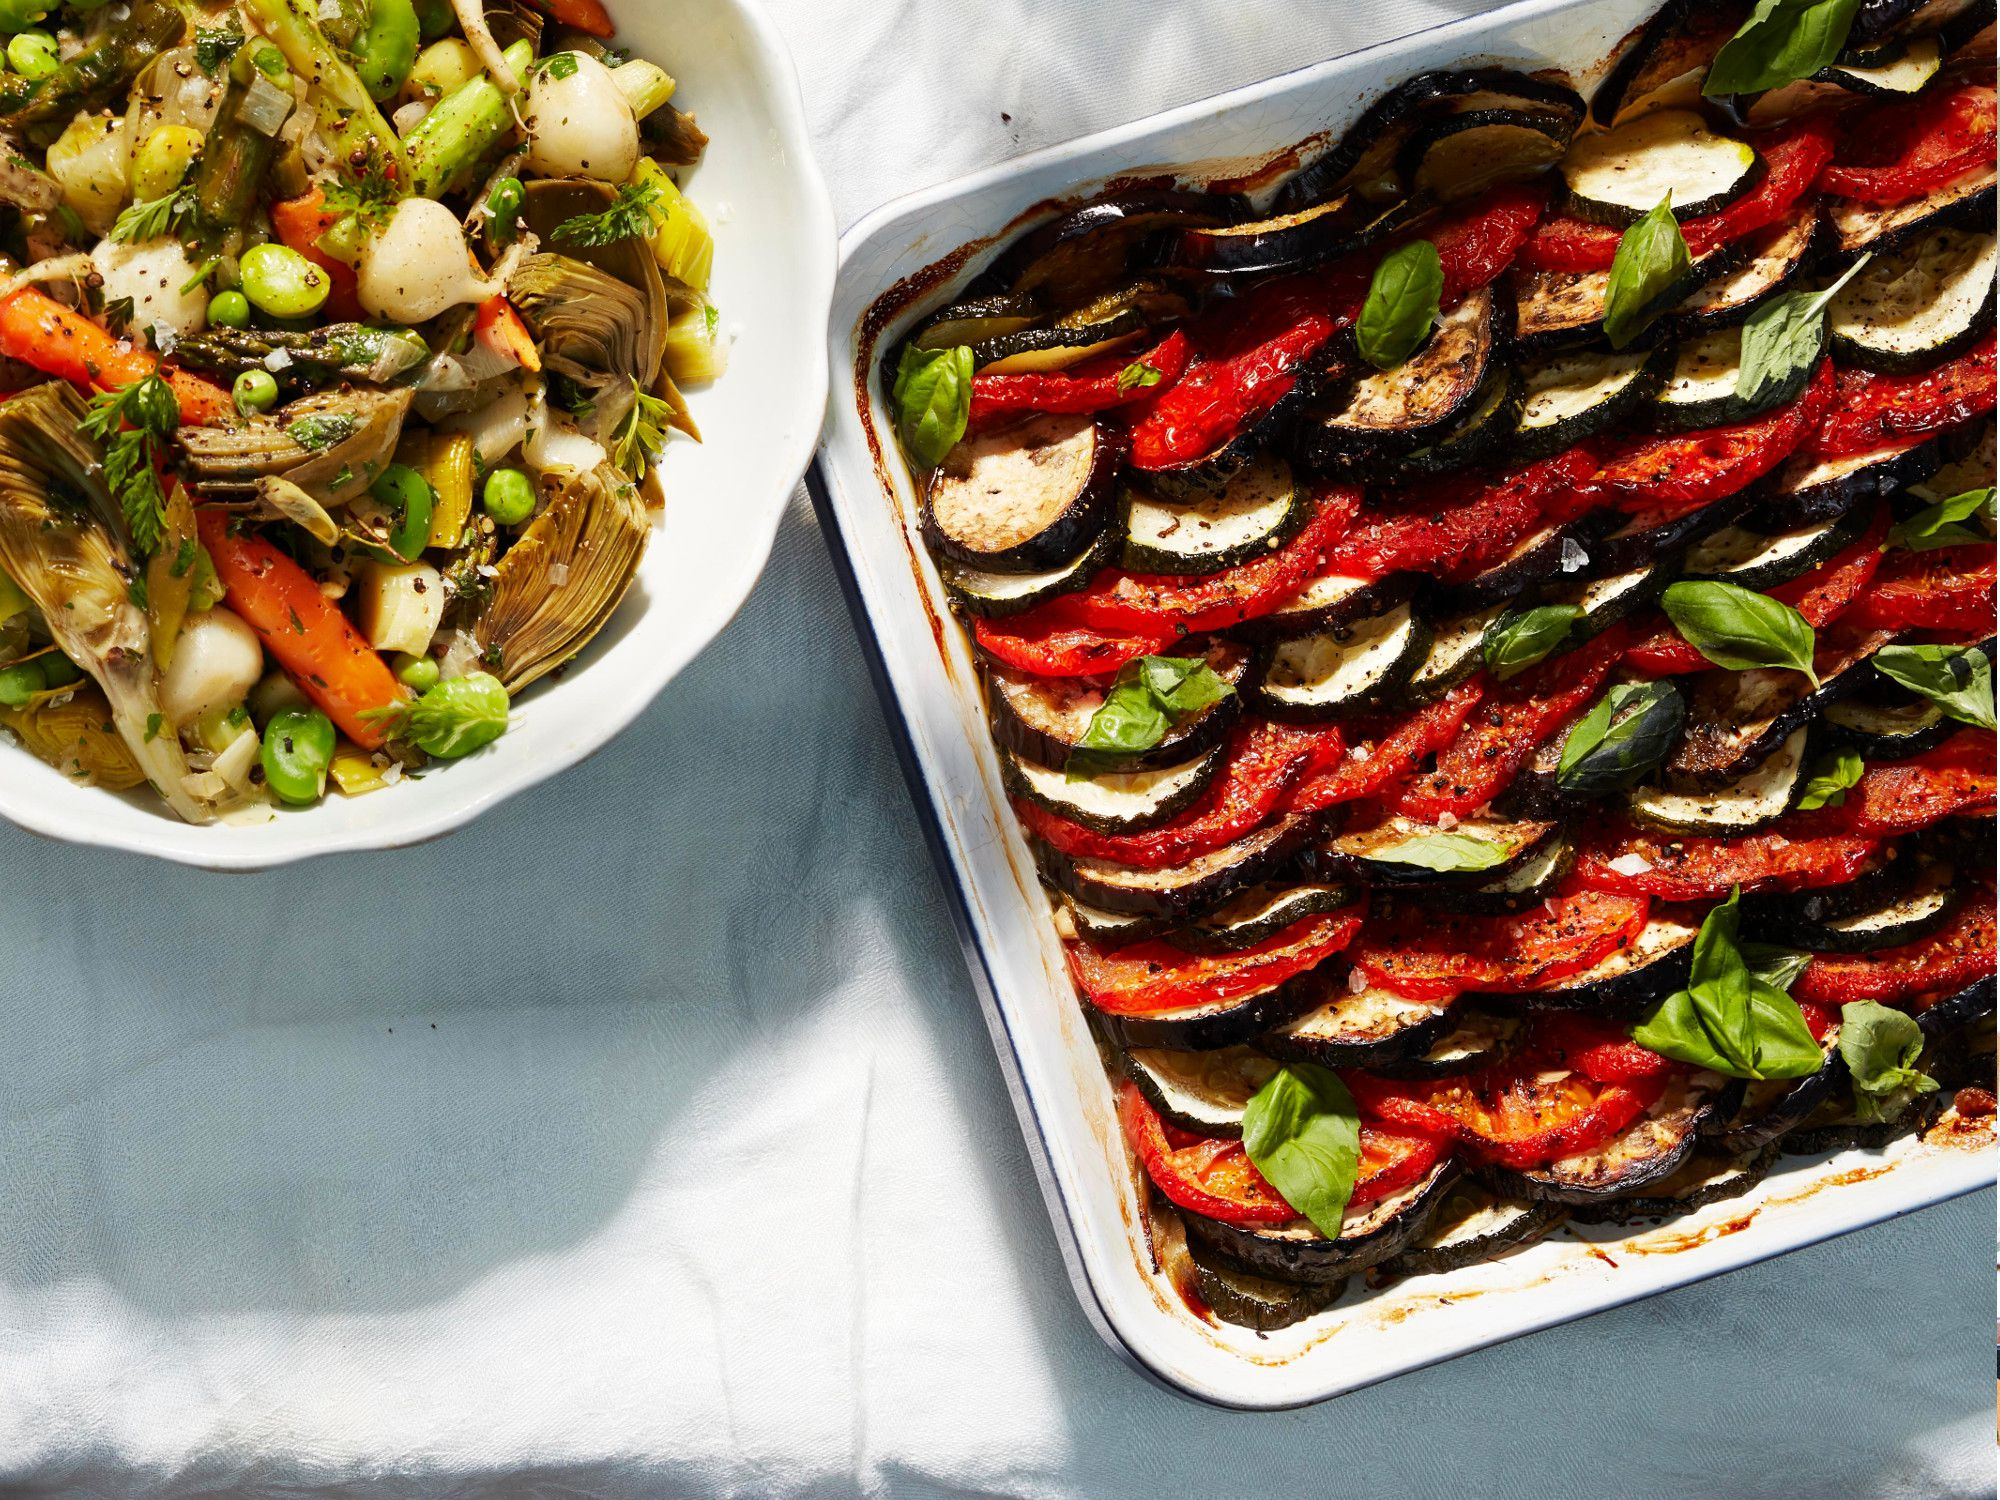 "A tian is a type of gratin, typically vegetables baked in an earthenware dish. (The word ""tian"" also refers to the earthenware dish itself.) This classic Provençal version is made with alternating rows of sliced zucchini, eggplant, and tomato. The flavors meld as the vegetables cook together, somewhat like ratatouille. Seasoned simply with thyme, garlic, and good fruity olive oil, the dish is best served at room temperature. Lulu insists it tastes even better made a day in advance. Get the recipe for <a href=""http://www.saveur.com/provencal-vegetable-gratin-tian-recipe"">Provençal Vegetable Gratin (Tian)</a>"